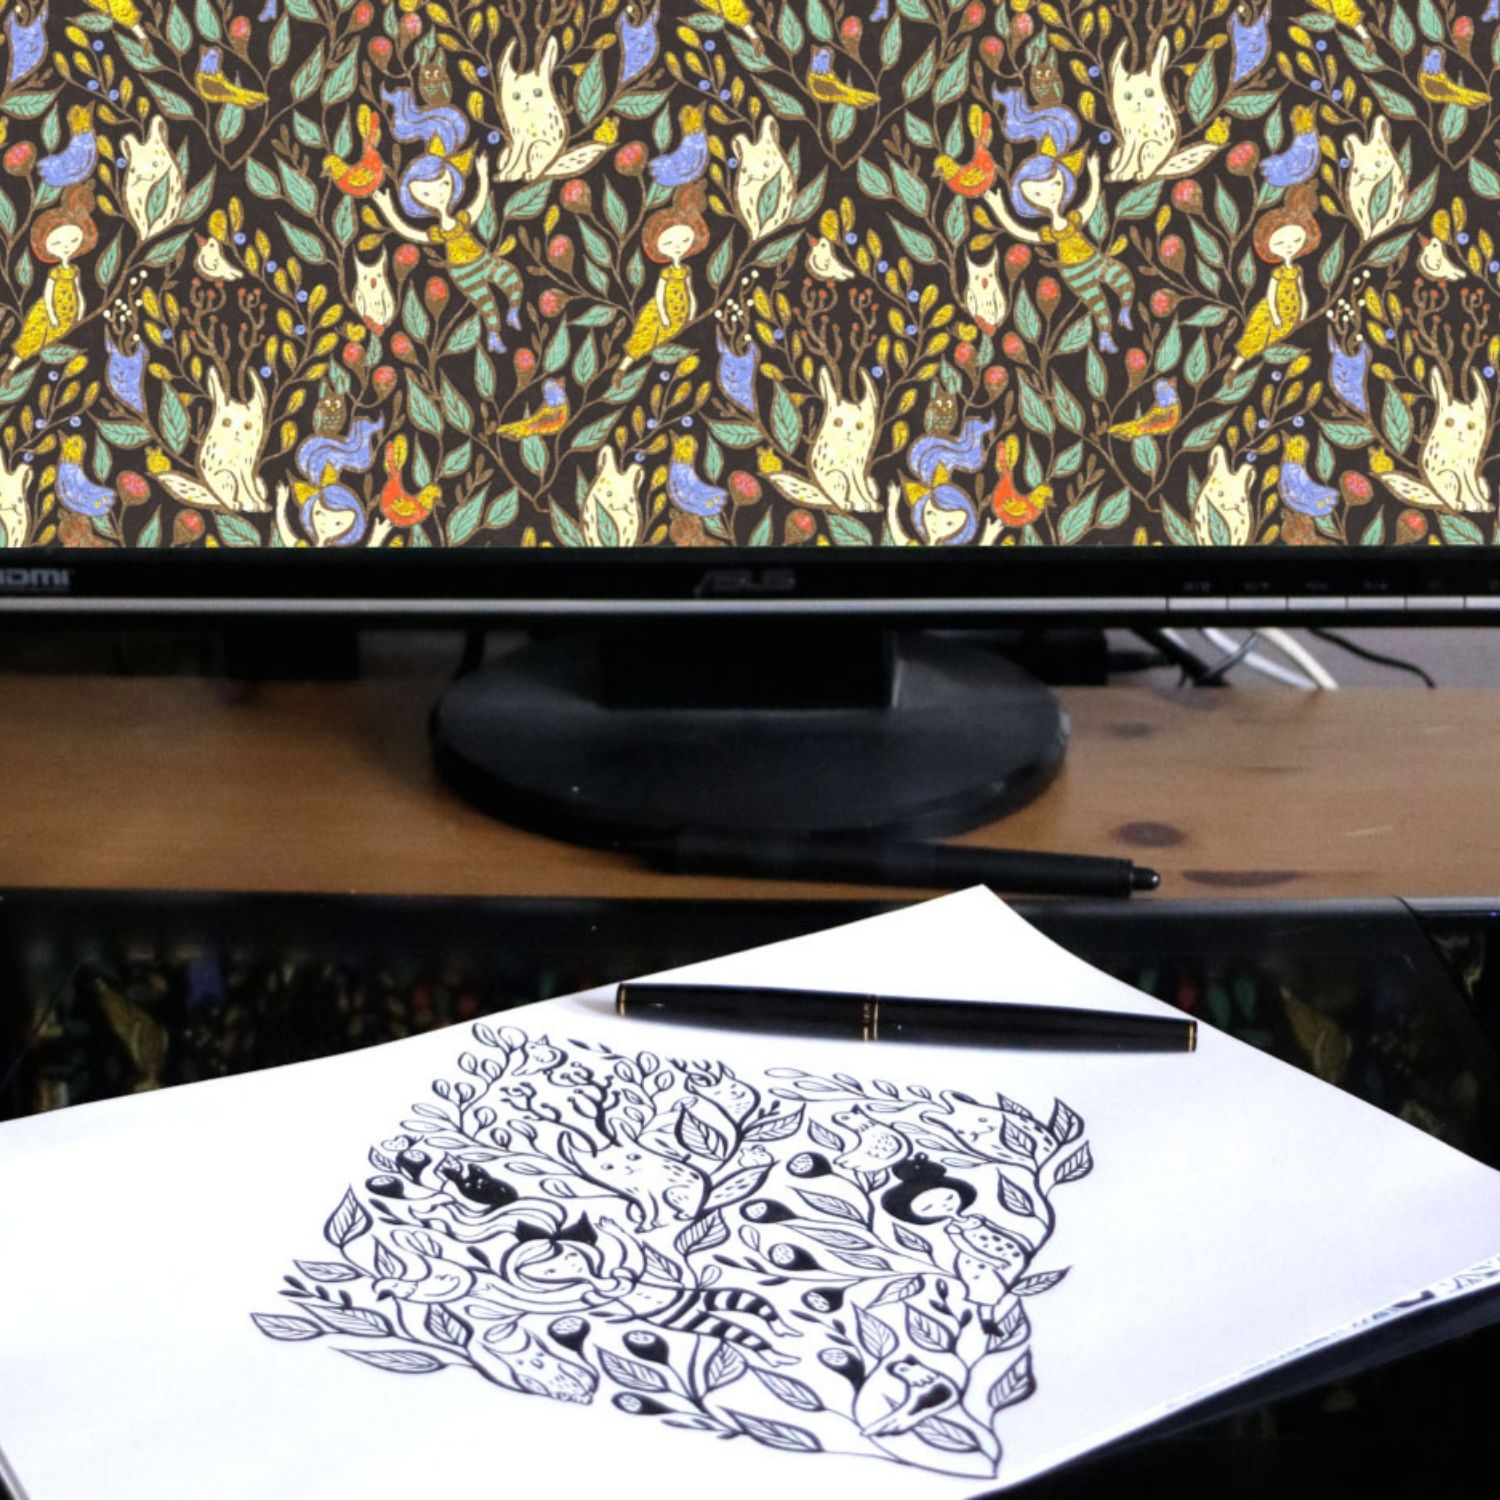 Drawing translated onto a computer screen